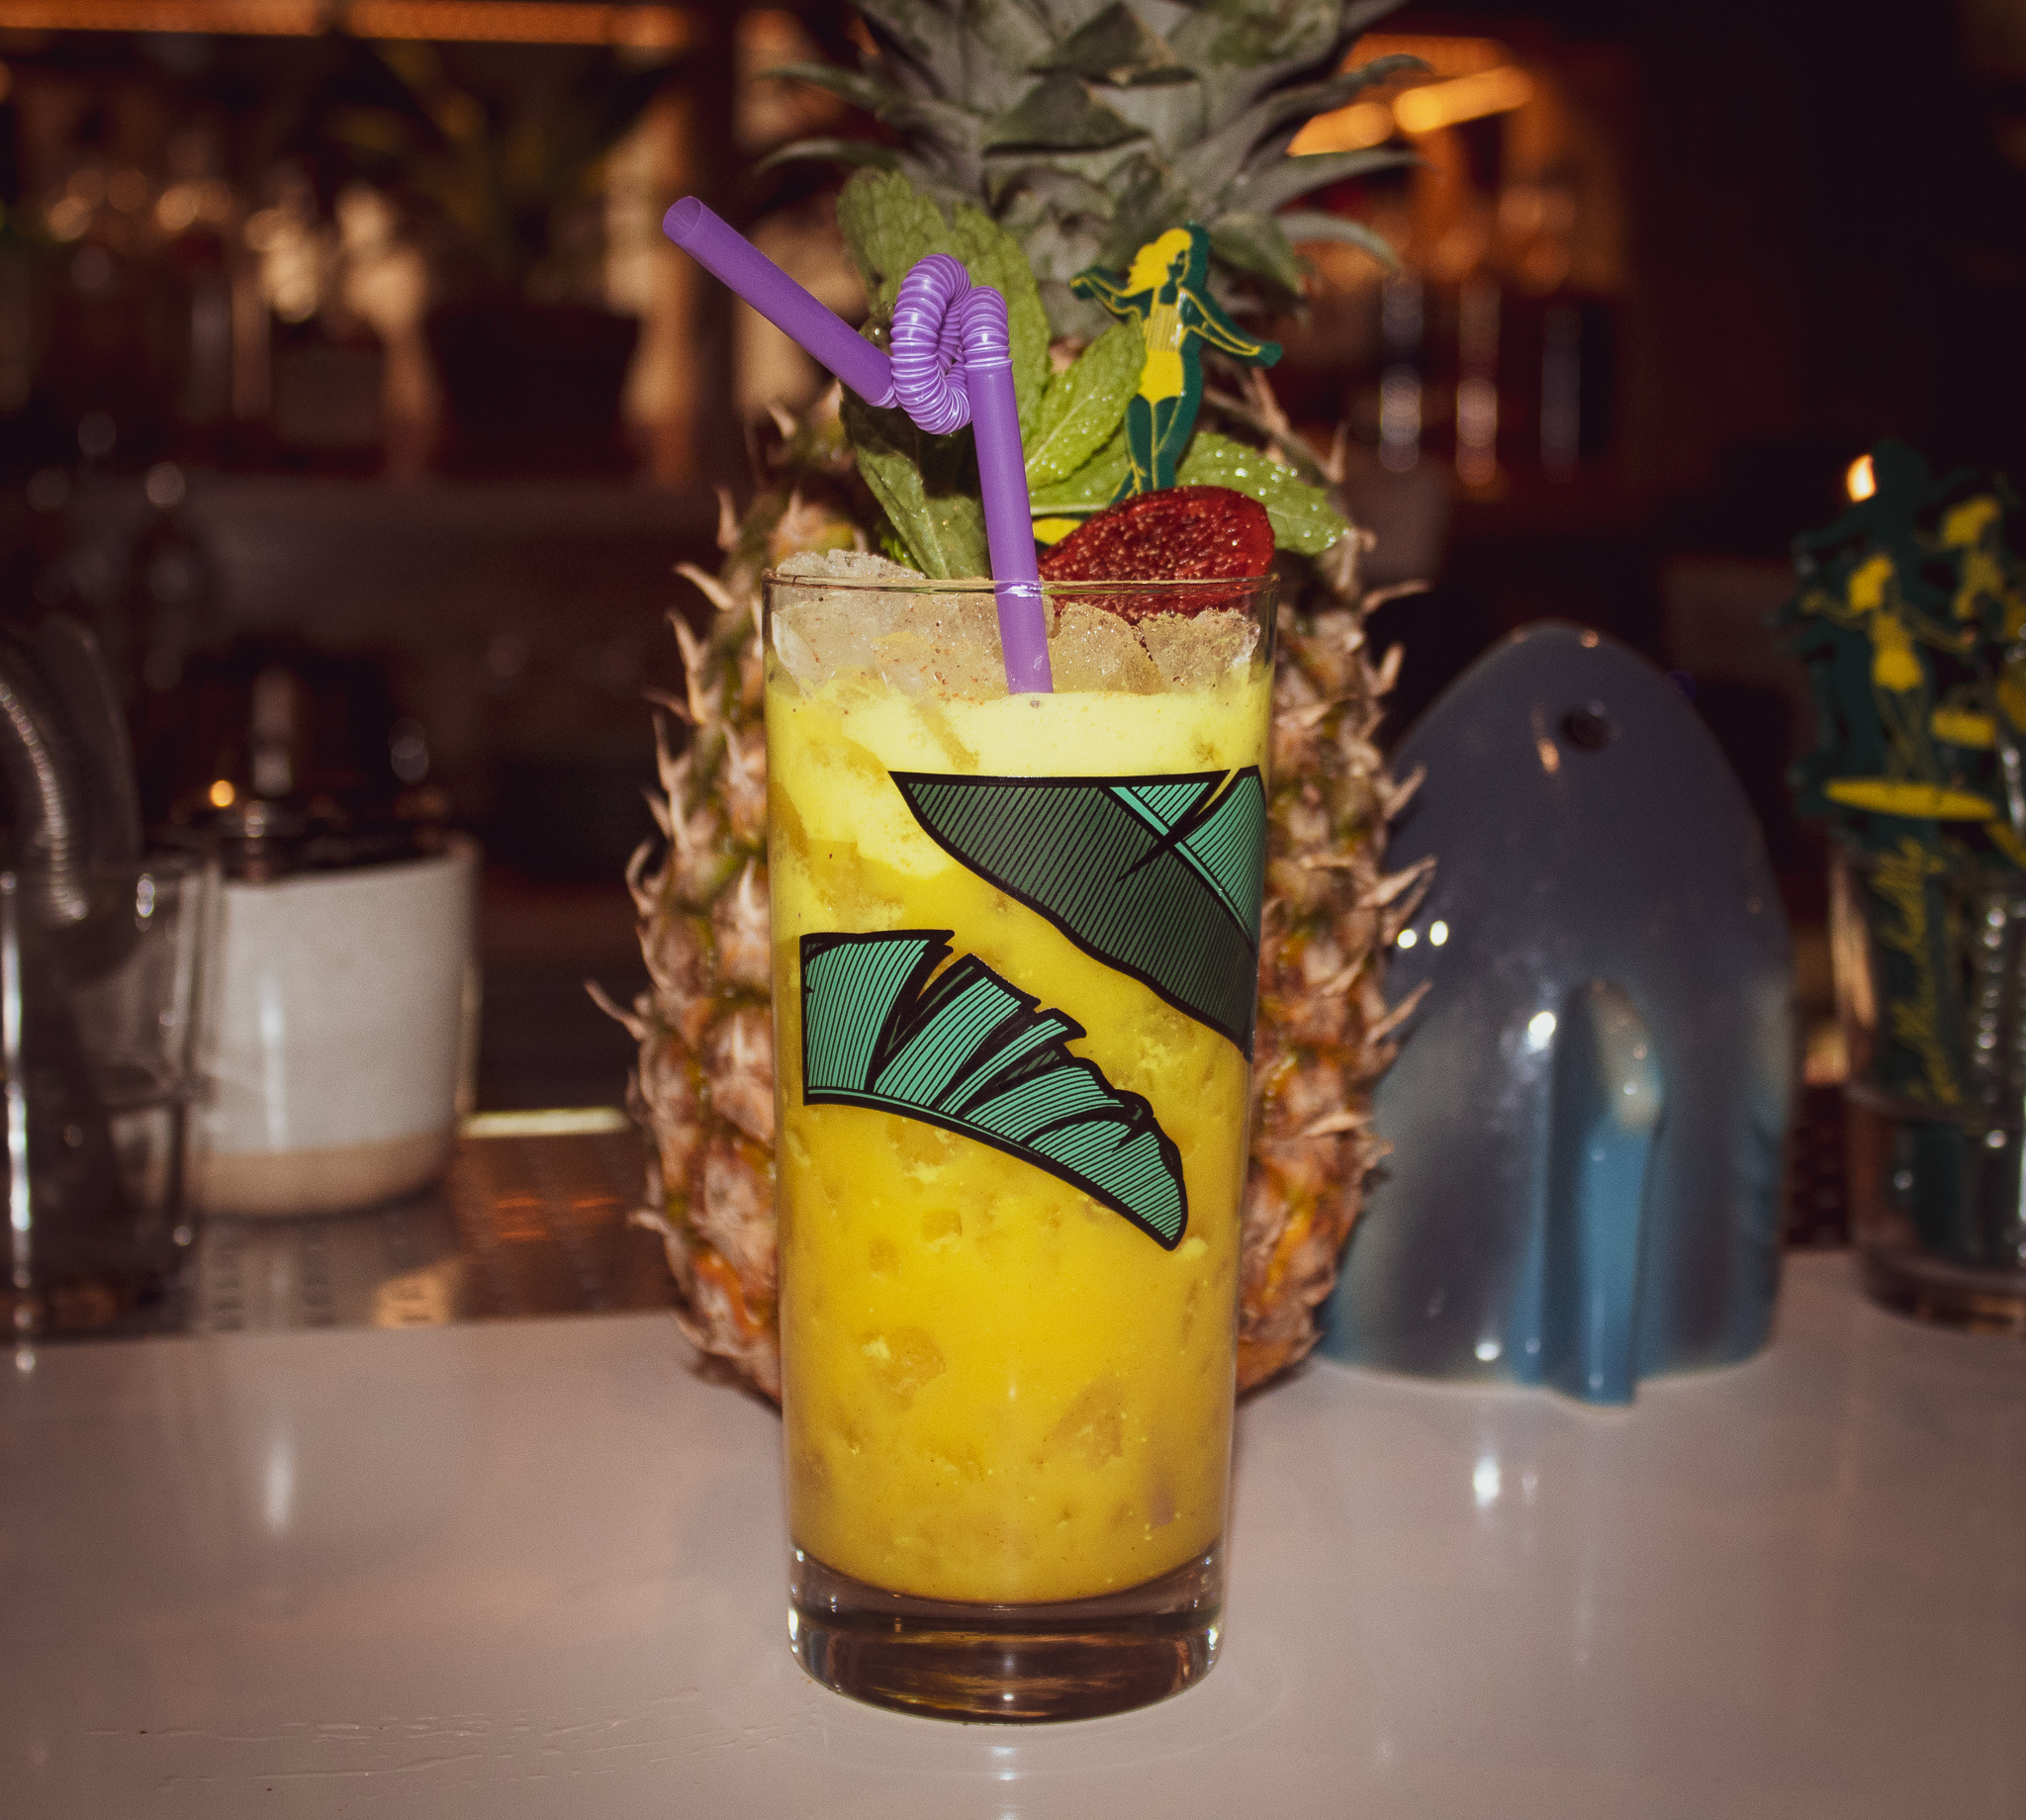 YELLOWBELLY - puerto rican & jamaican rum, coconut, turmeric, ginger falernum, pineapple and lime juice